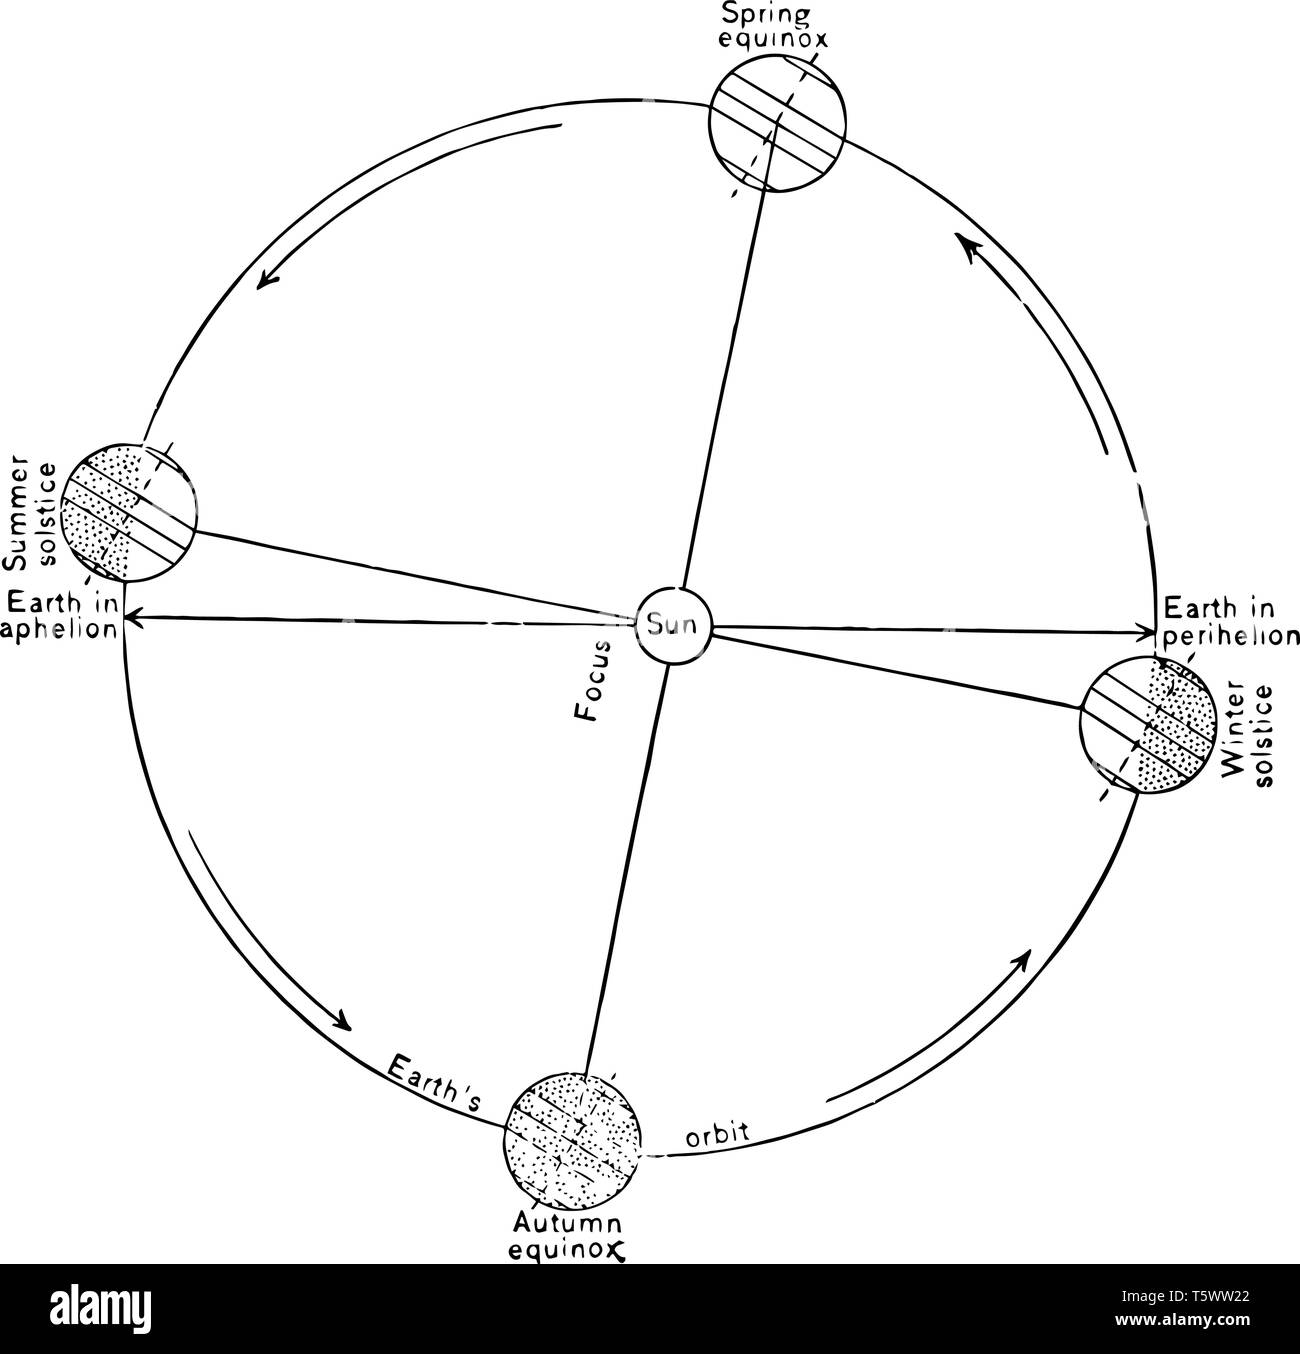 relative positions of the earth and the sun during the spring equinox the  summer solstice the autumn equinox and the winter solstic vintage line drawi